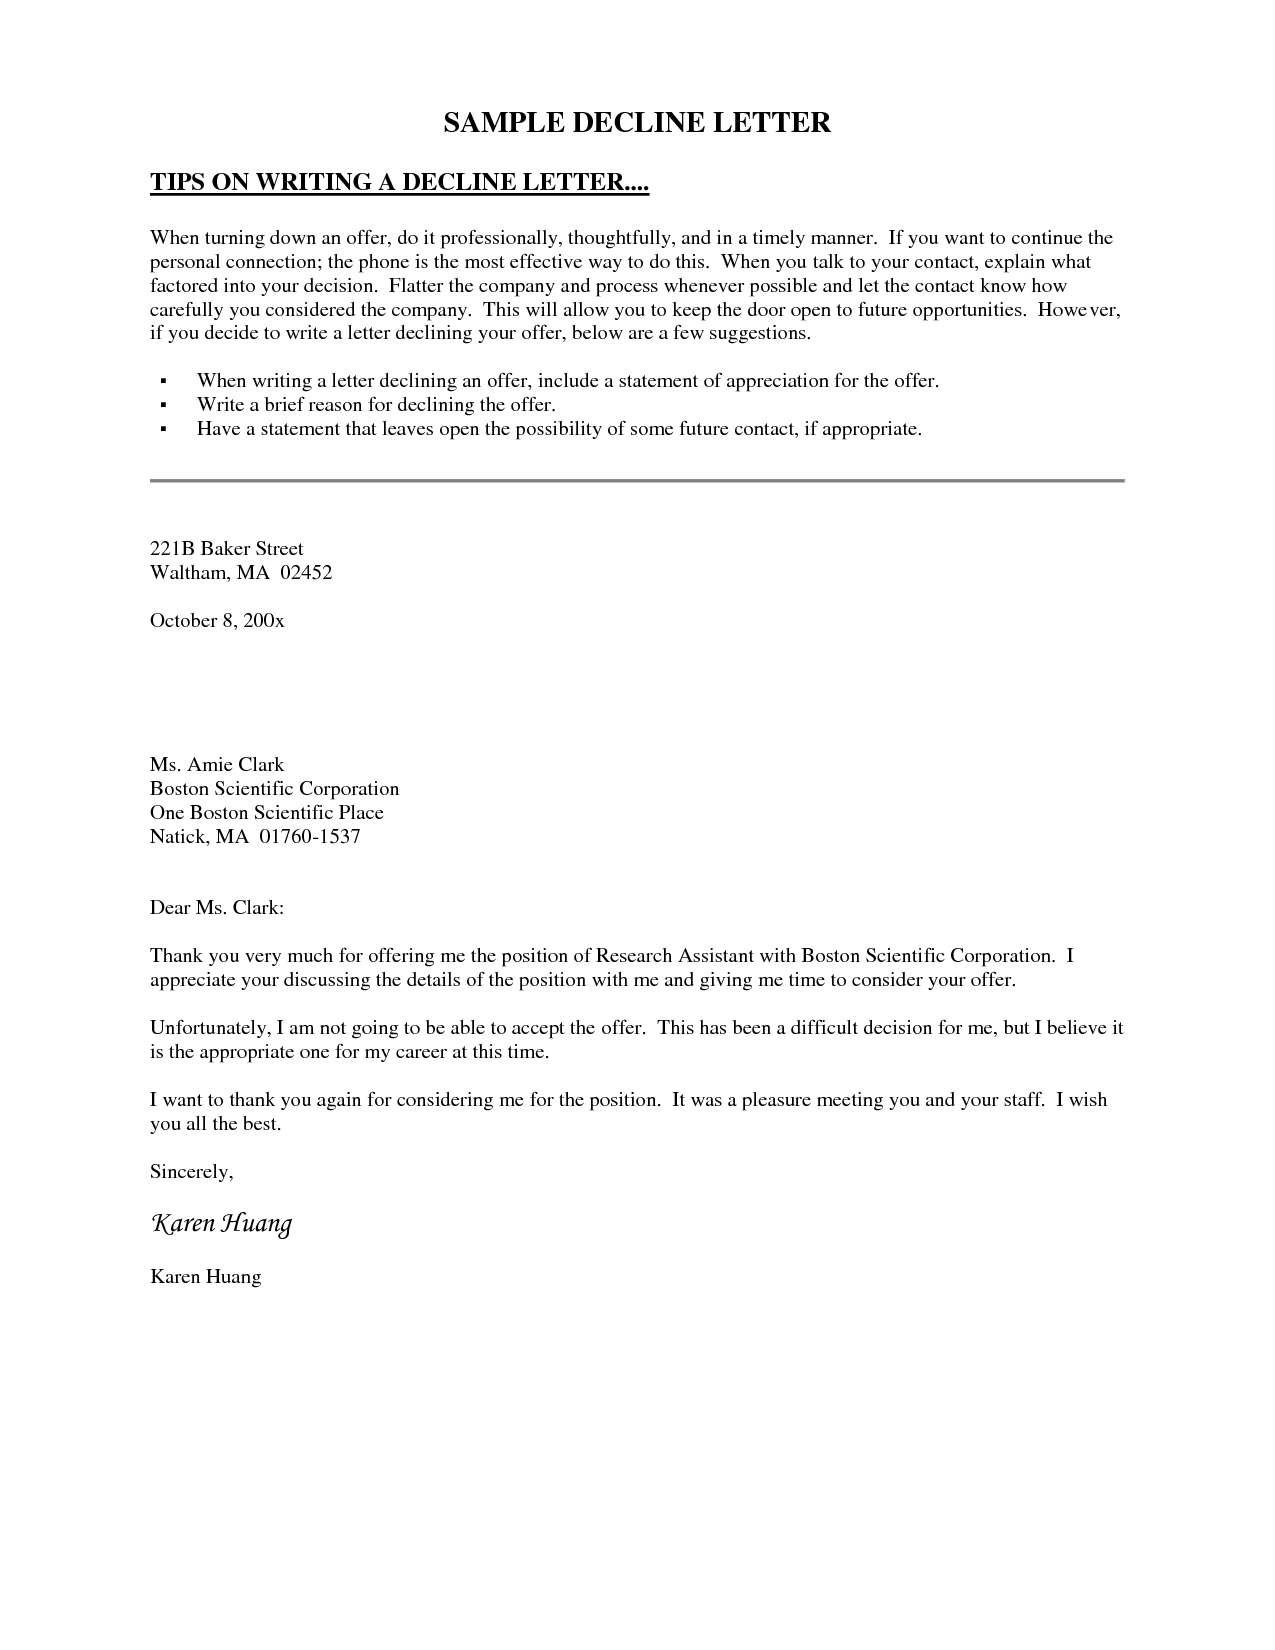 New Board Member orientation Welcome Letter Template - Decline Invitation Letter This Letter Template Declines An